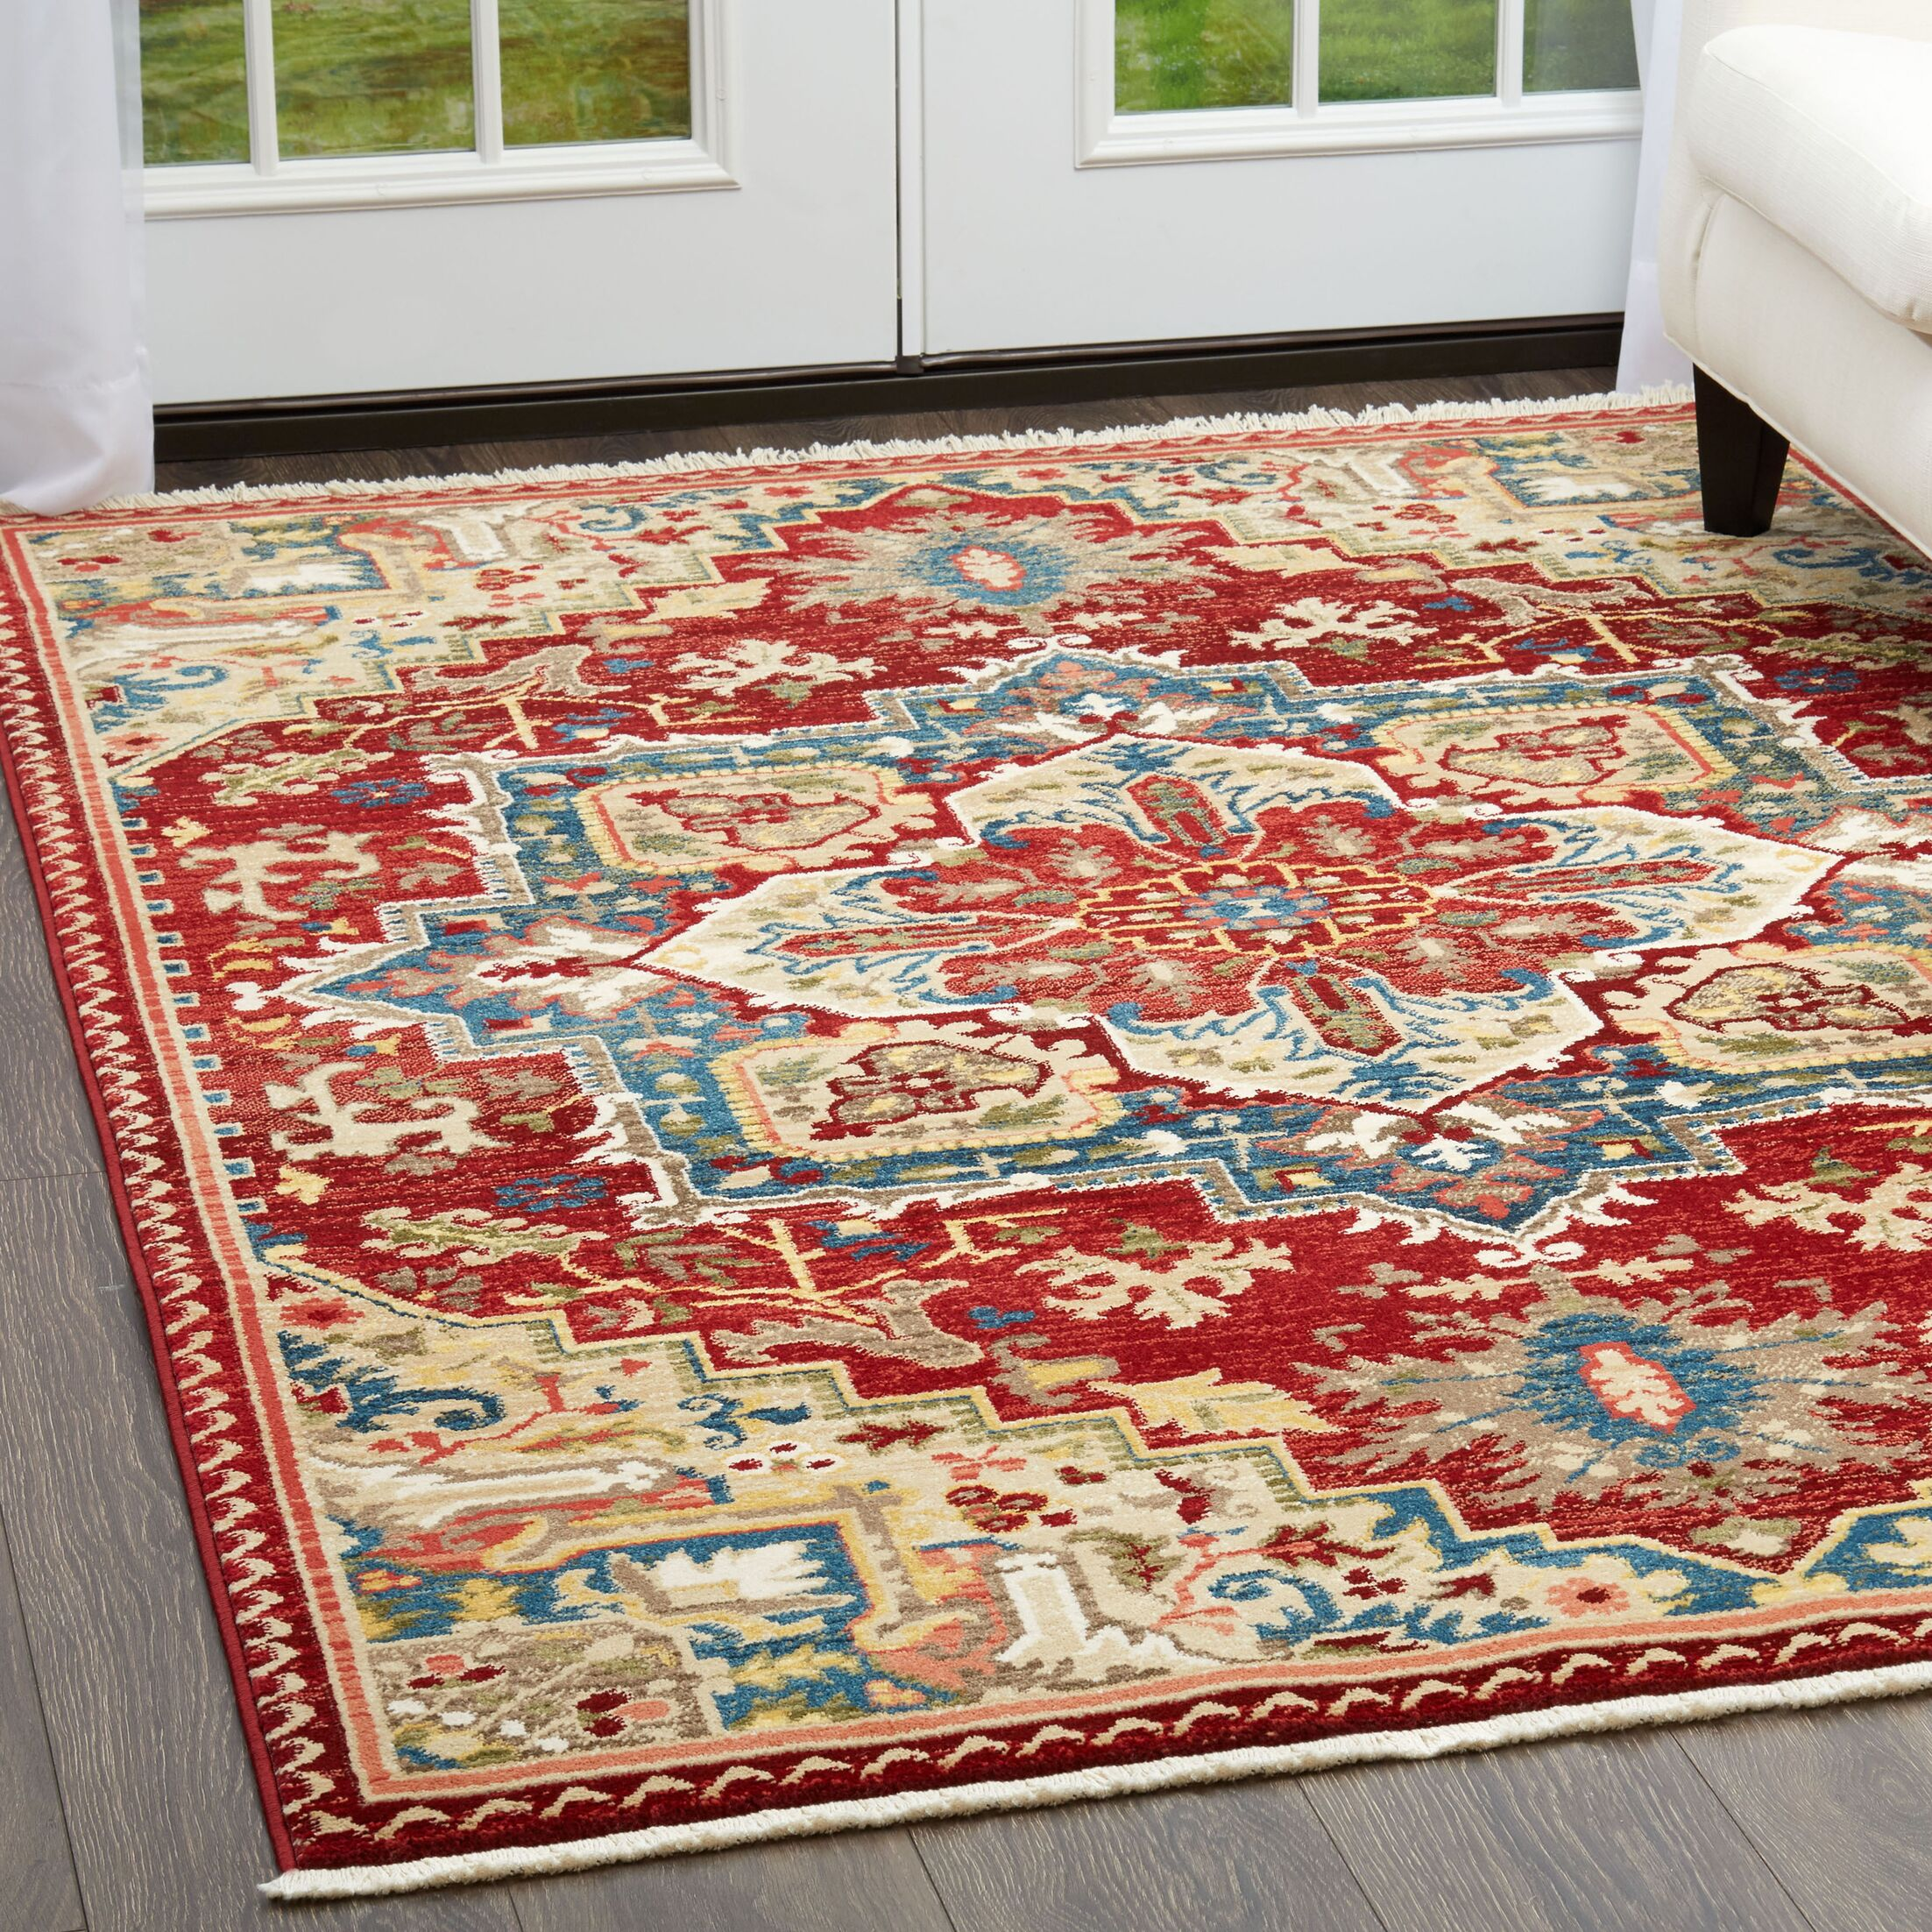 Ridgefield Red Area Rug Rug Size: Rectangle 7'9